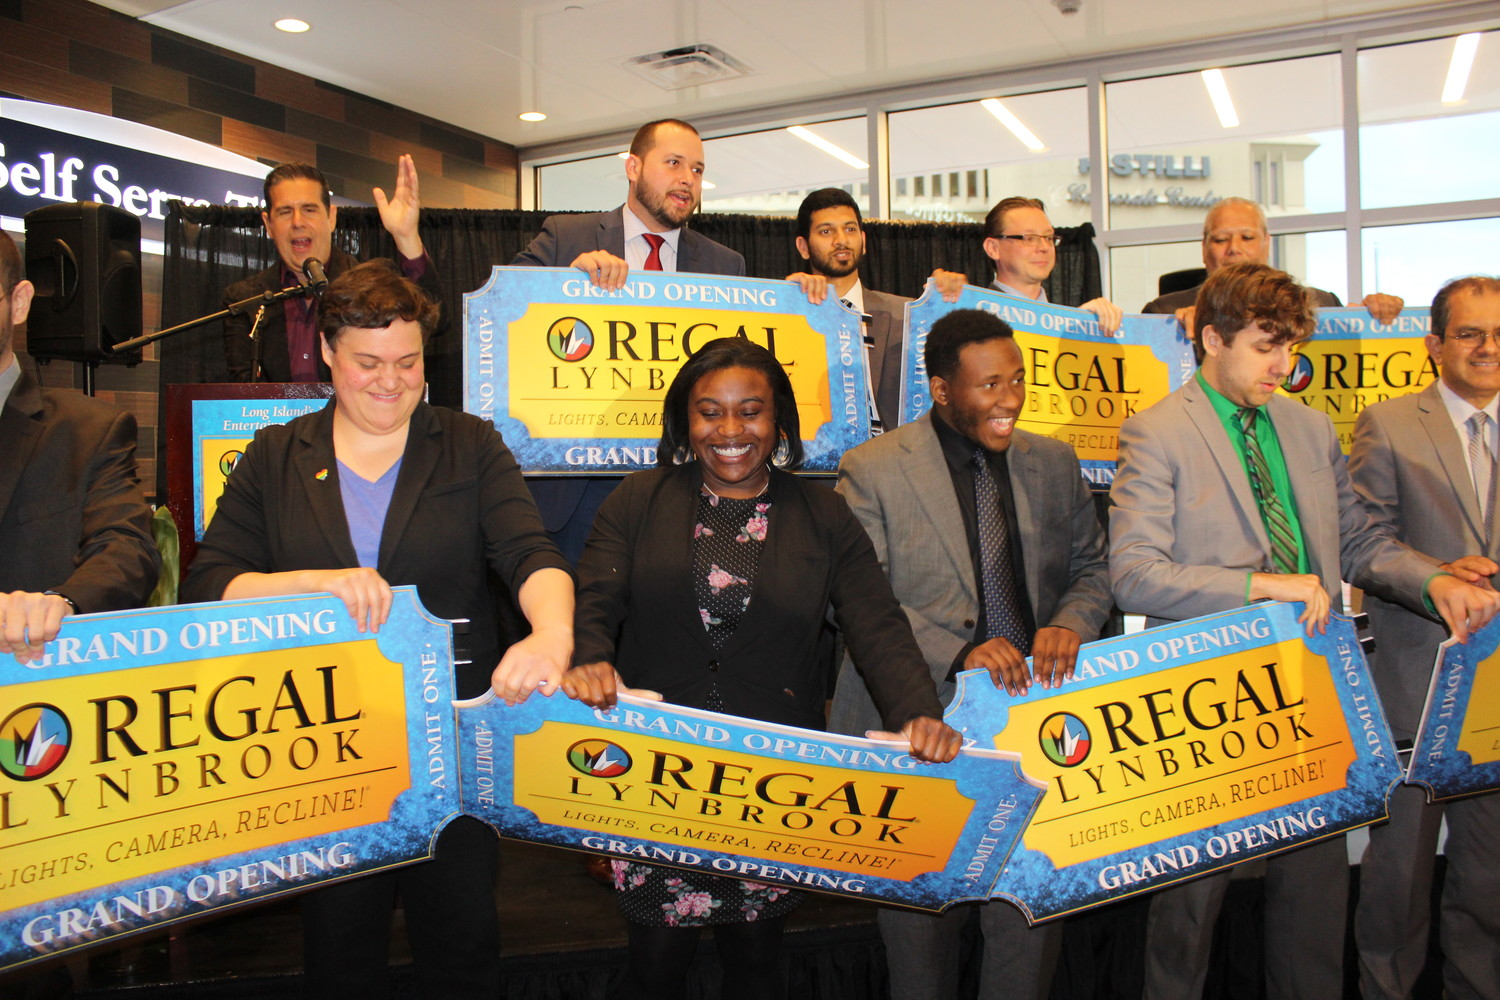 Regal movie theater officially opens in Lynbrook | Herald Community